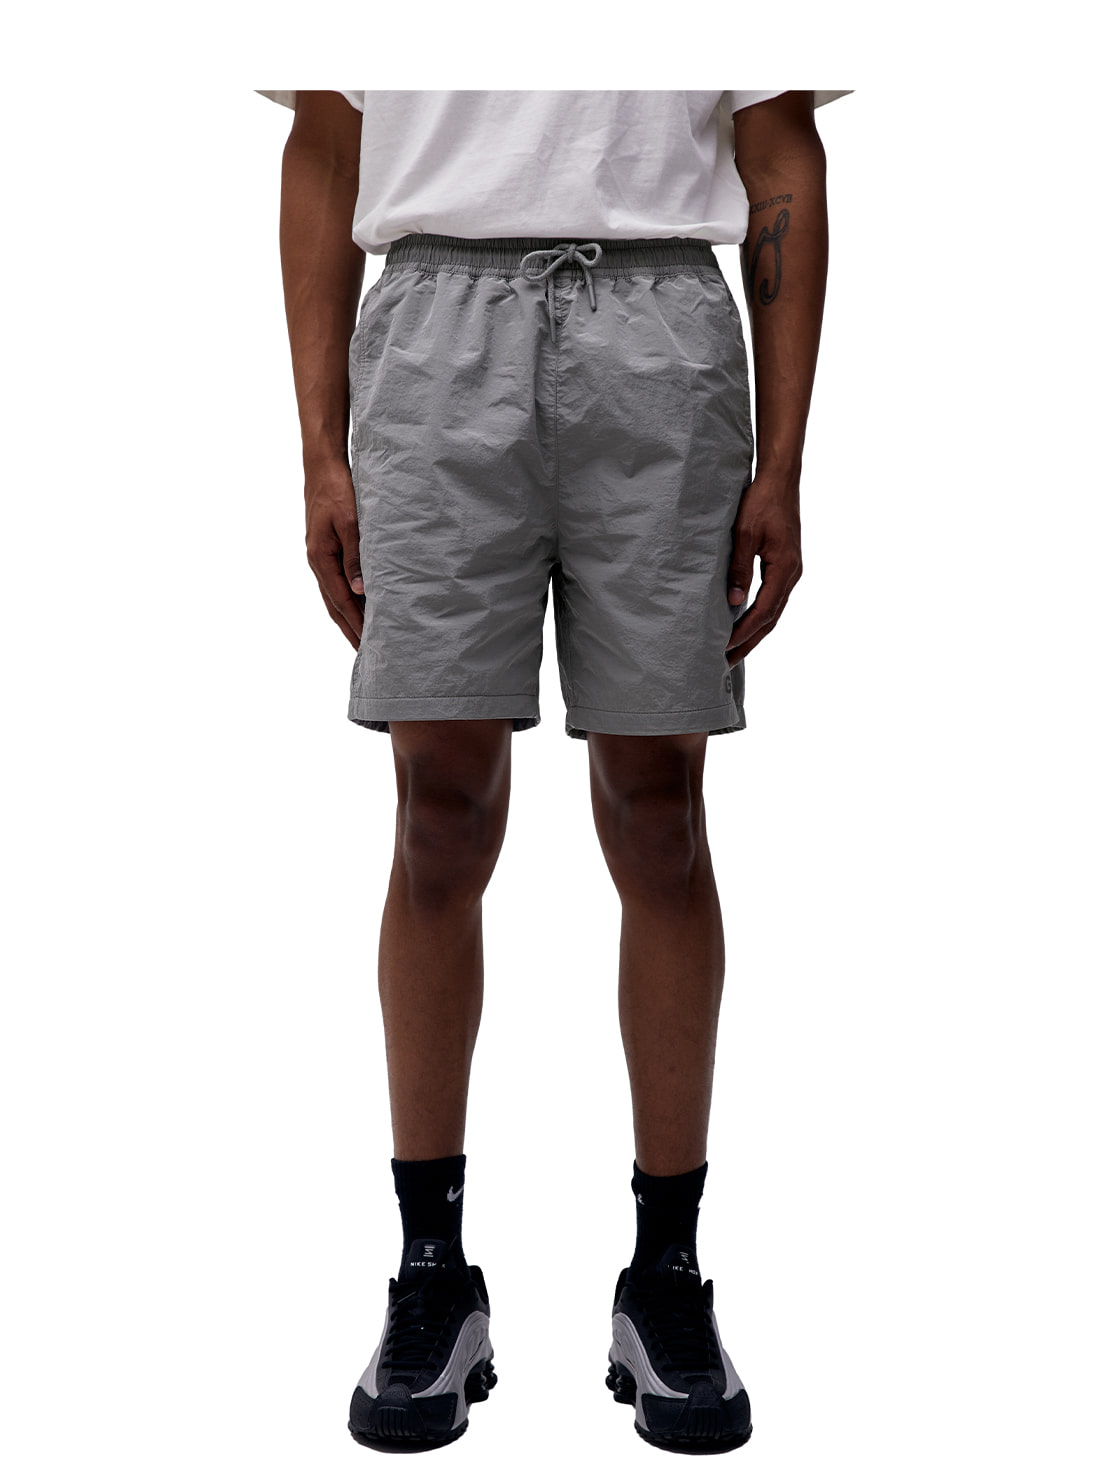 (Sold Out) SOLID SHORTS - GREY